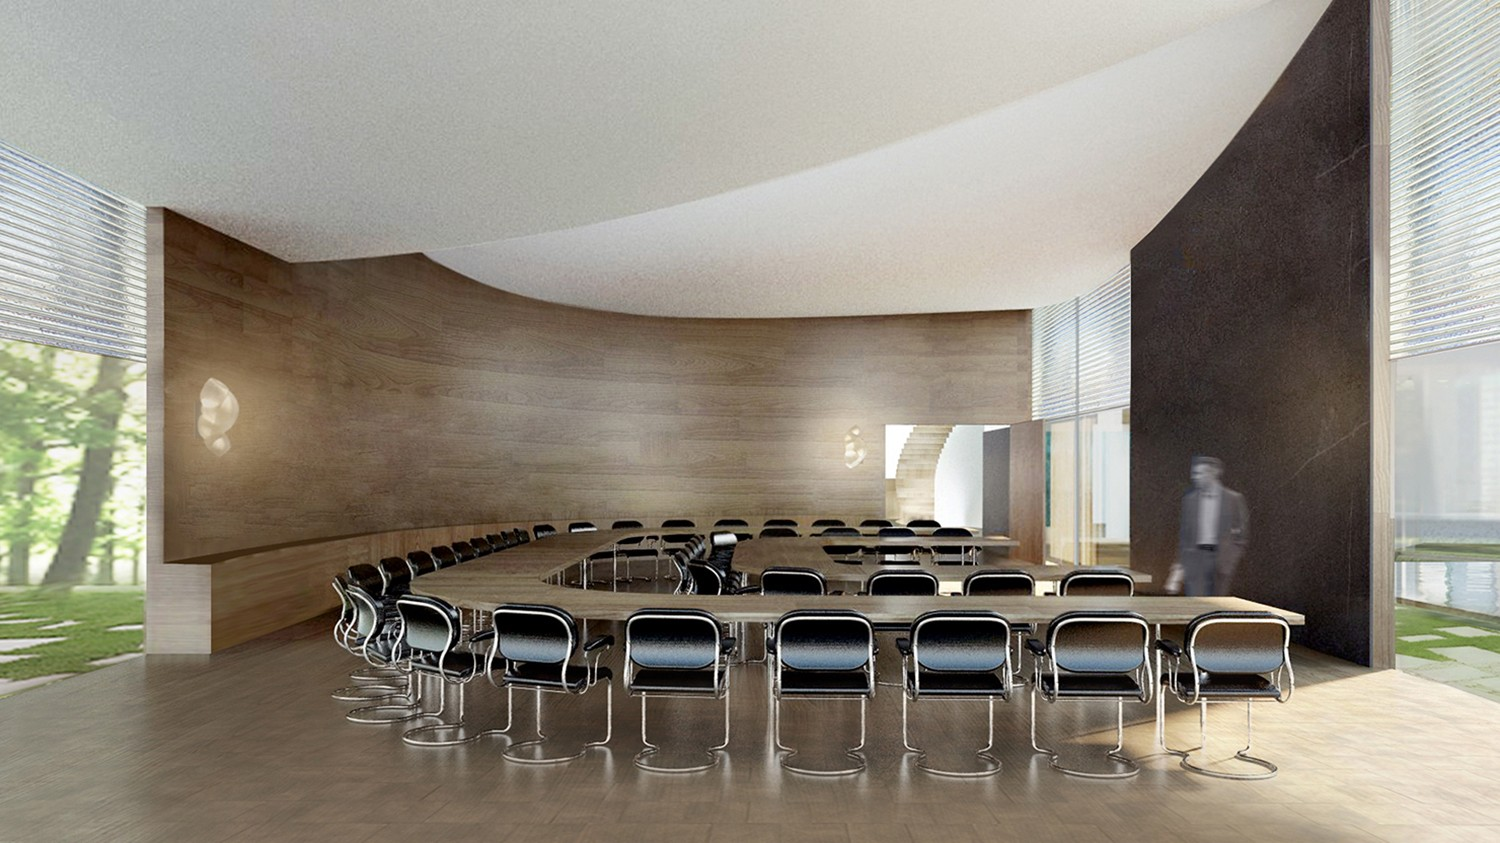 https://s3.us-east-2.amazonaws.com/steven-holl/uploads/projects/project-images/StevenHollArchitects_IAS_BoardRoom_WH.jpg